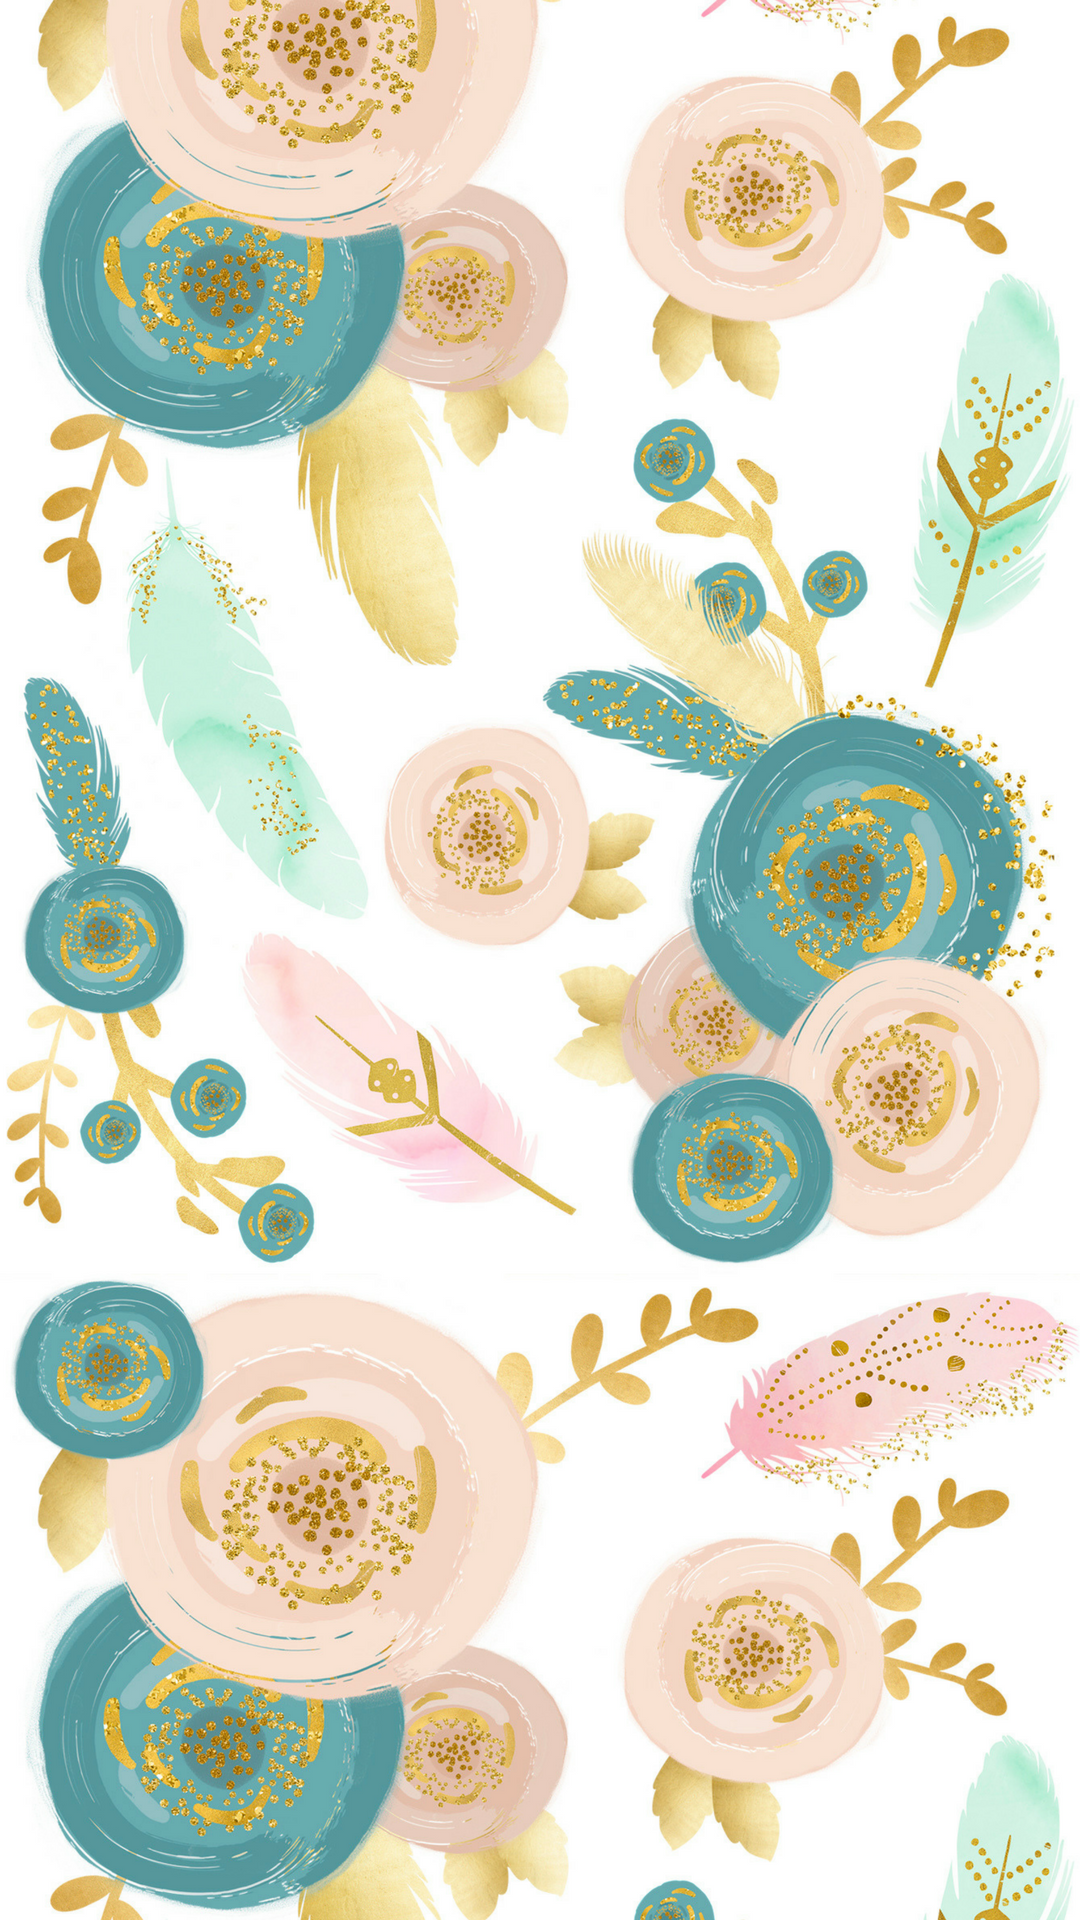 Background Screen Savers Png - Pin by Stephanie Dean on Backgrounds | Phone wallpaper boho ...